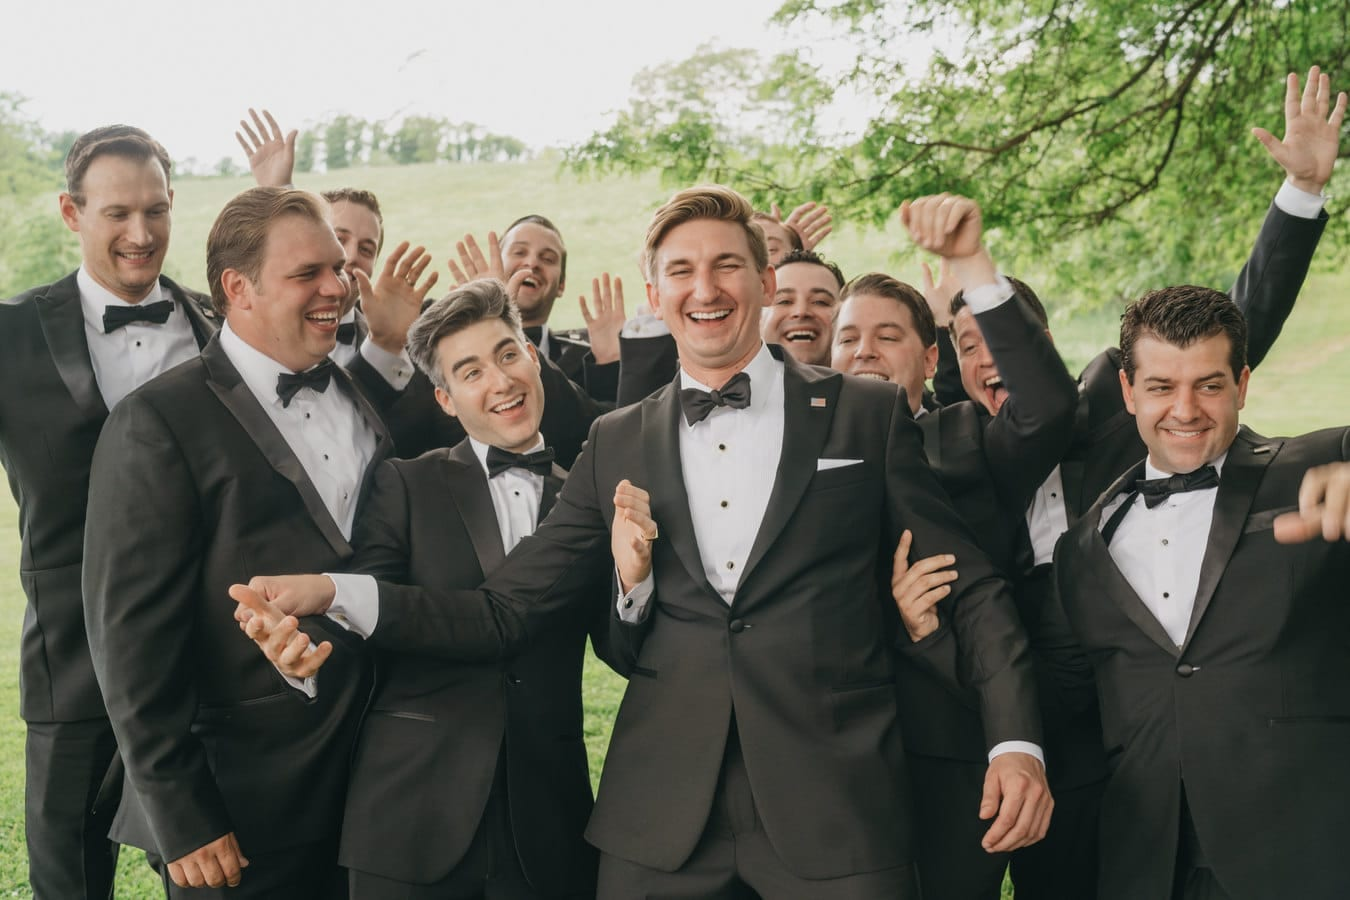 Groomsmen crowd excitedly around groom, smiling and putting their hands up at Catskill wedding venue.